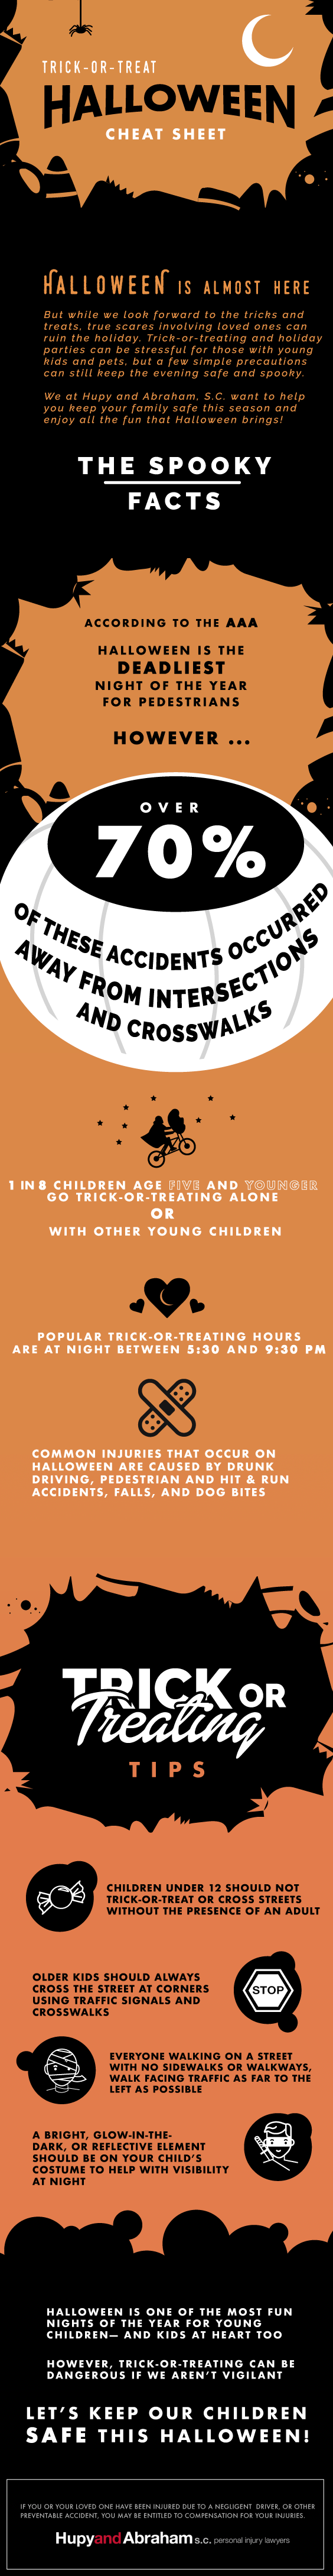 Halloween safety infographic!